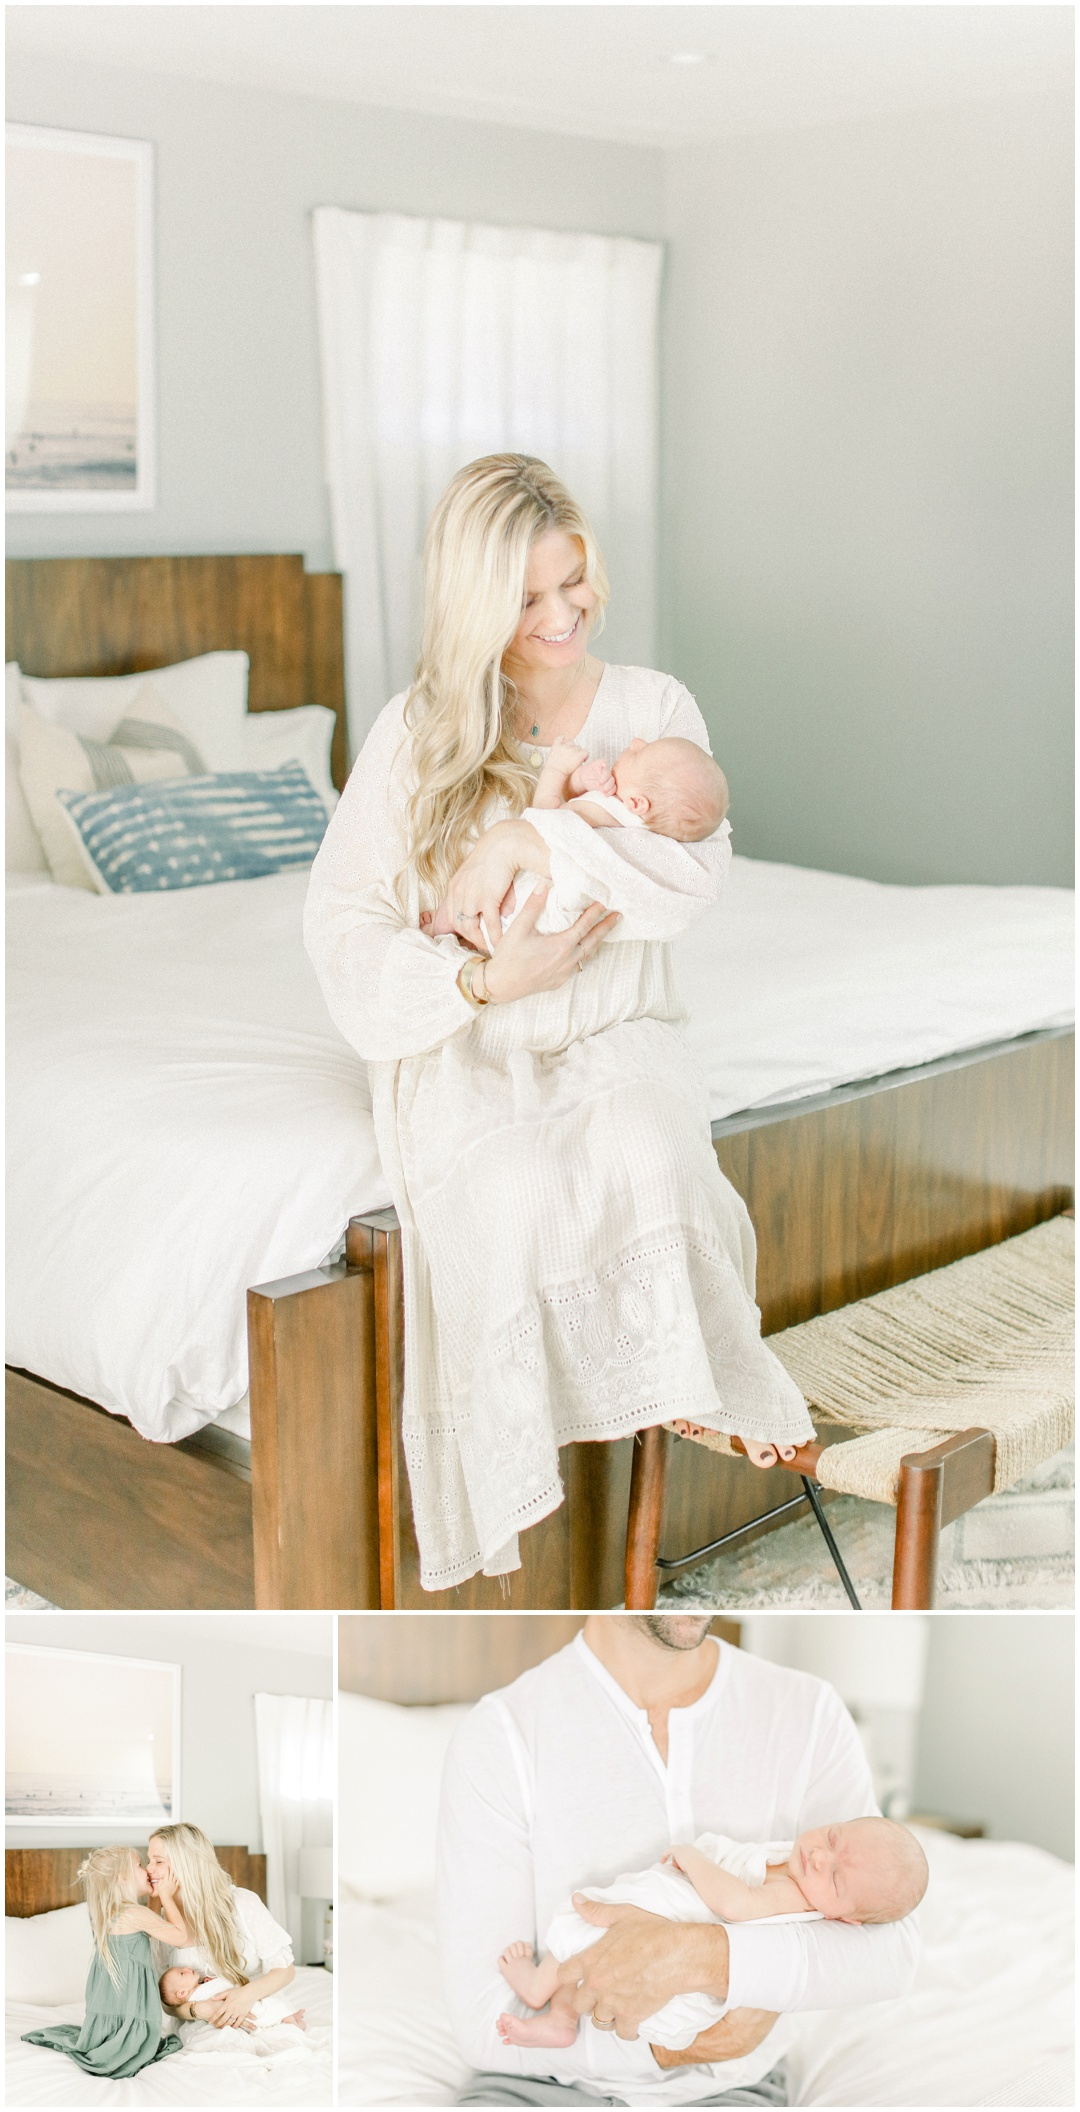 Newport_Beach_Newborn_Light_Airy_Natural_Photographer_Newport_Beach_Photographer_Orange_County_Family_Photographer_Cori_Kleckner_Photography_Newport_Beach_Photographer_Jacobs_Shelly__4069.jpg